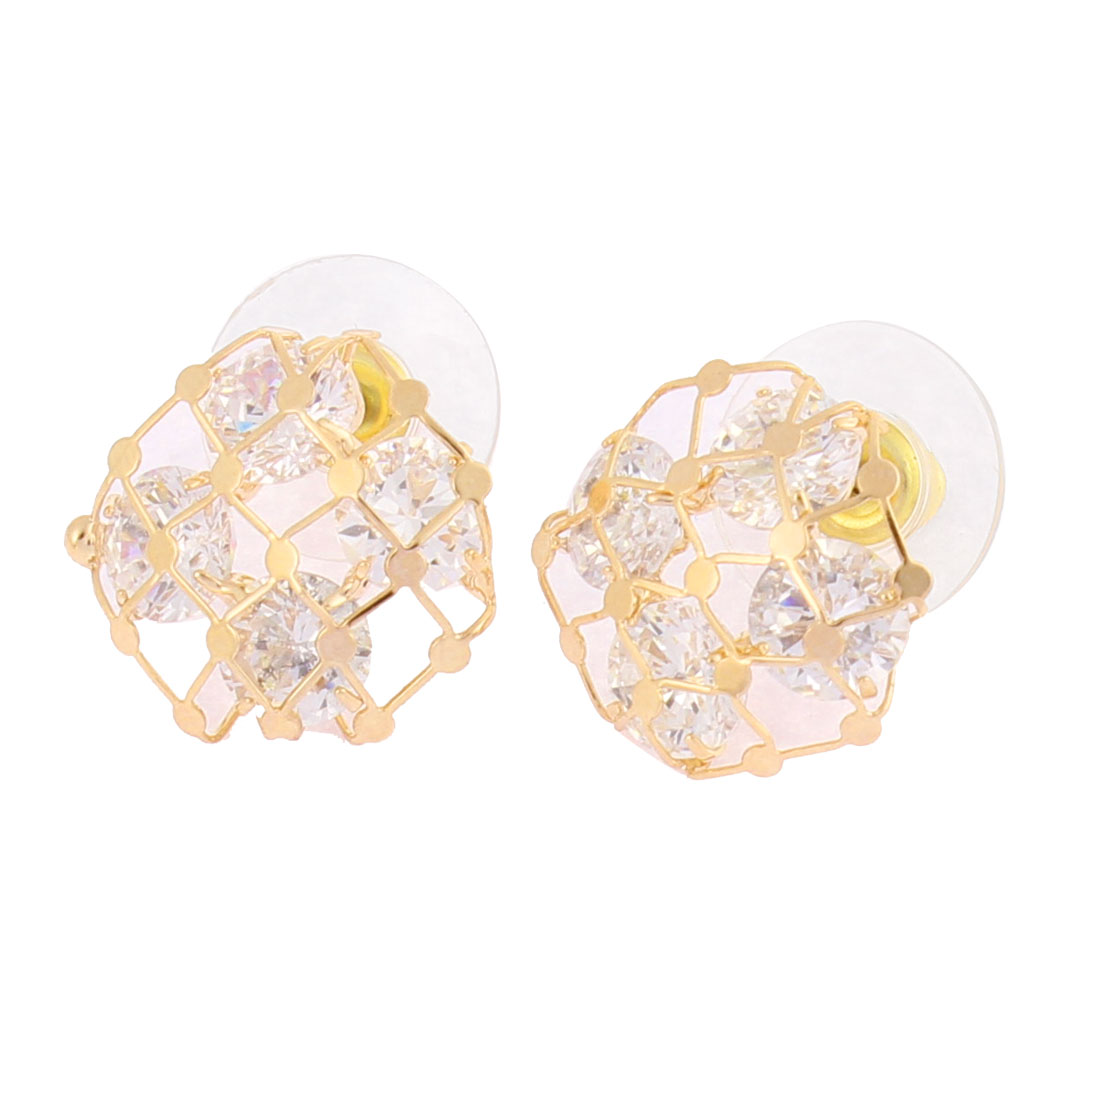 Faux Rhinestone Detail Hollow Round Shape Metal Netting Stud Earrings Ear Pins Nails Gold Tone Pair